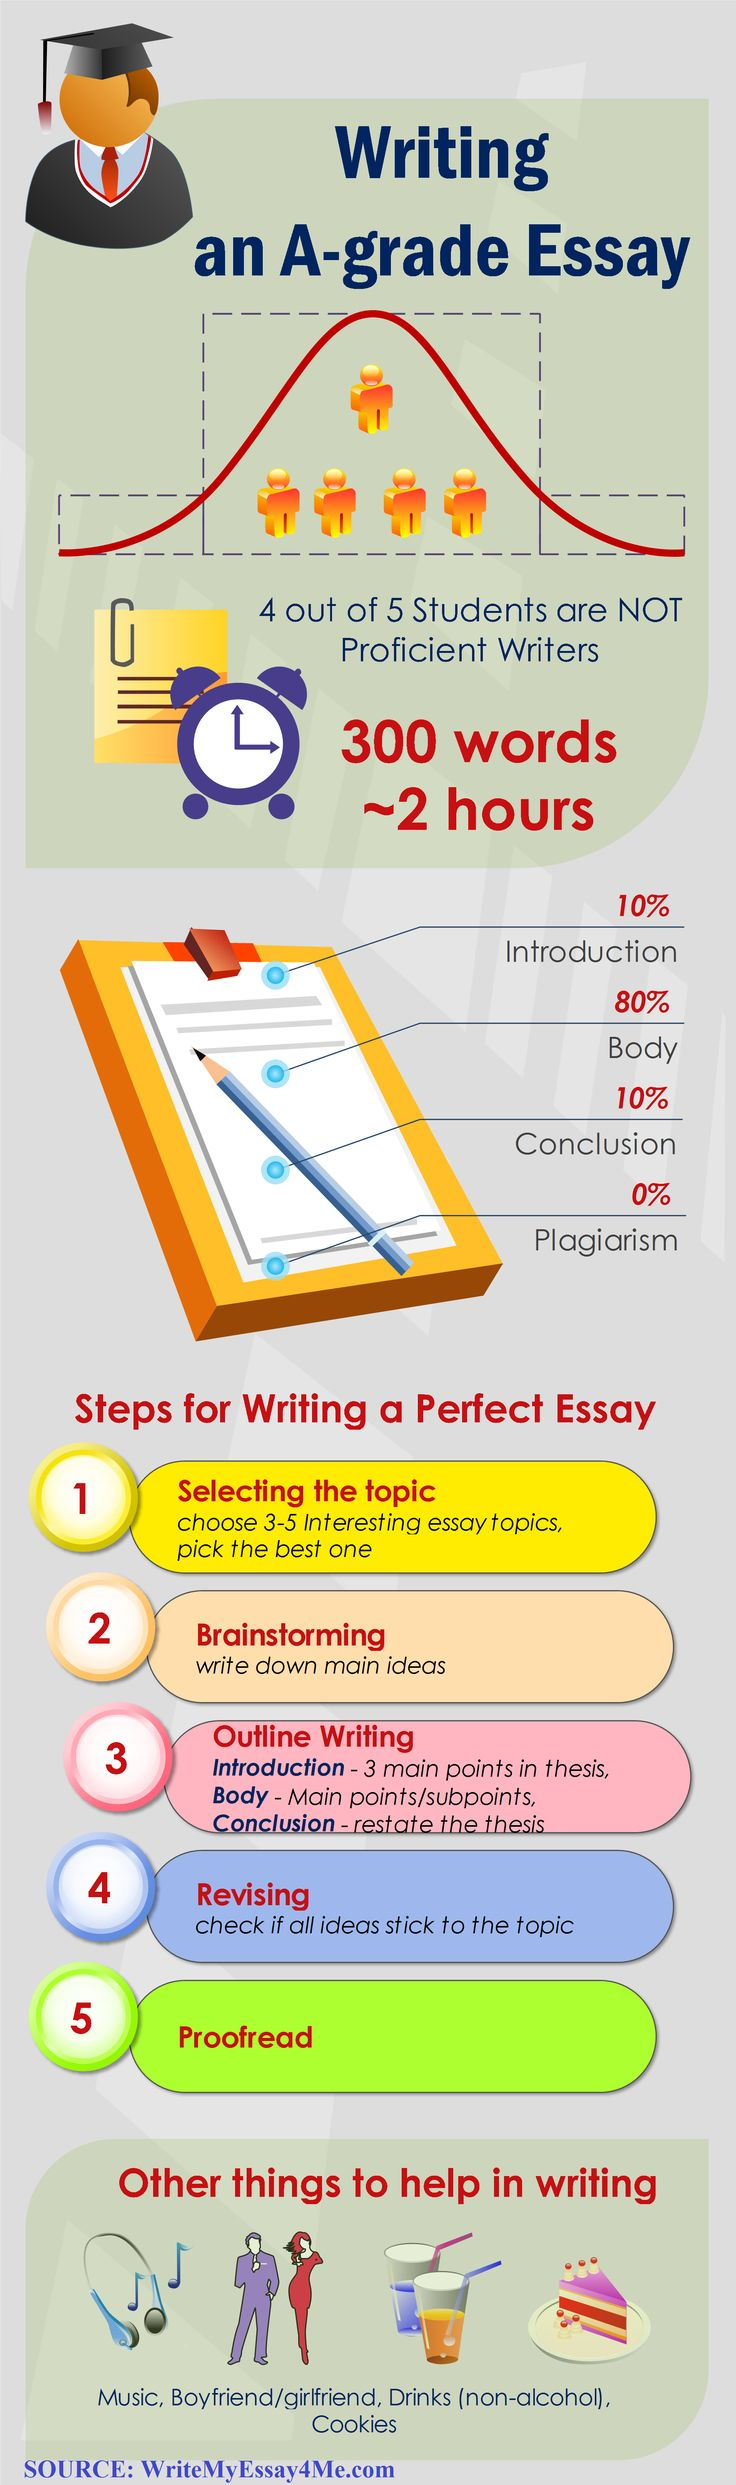 17 best ideas about essay writing tips essay tips it is of my opinion no offense that being in a r tic relationship anyone cannot be concomitant receiving high grades and making great essays